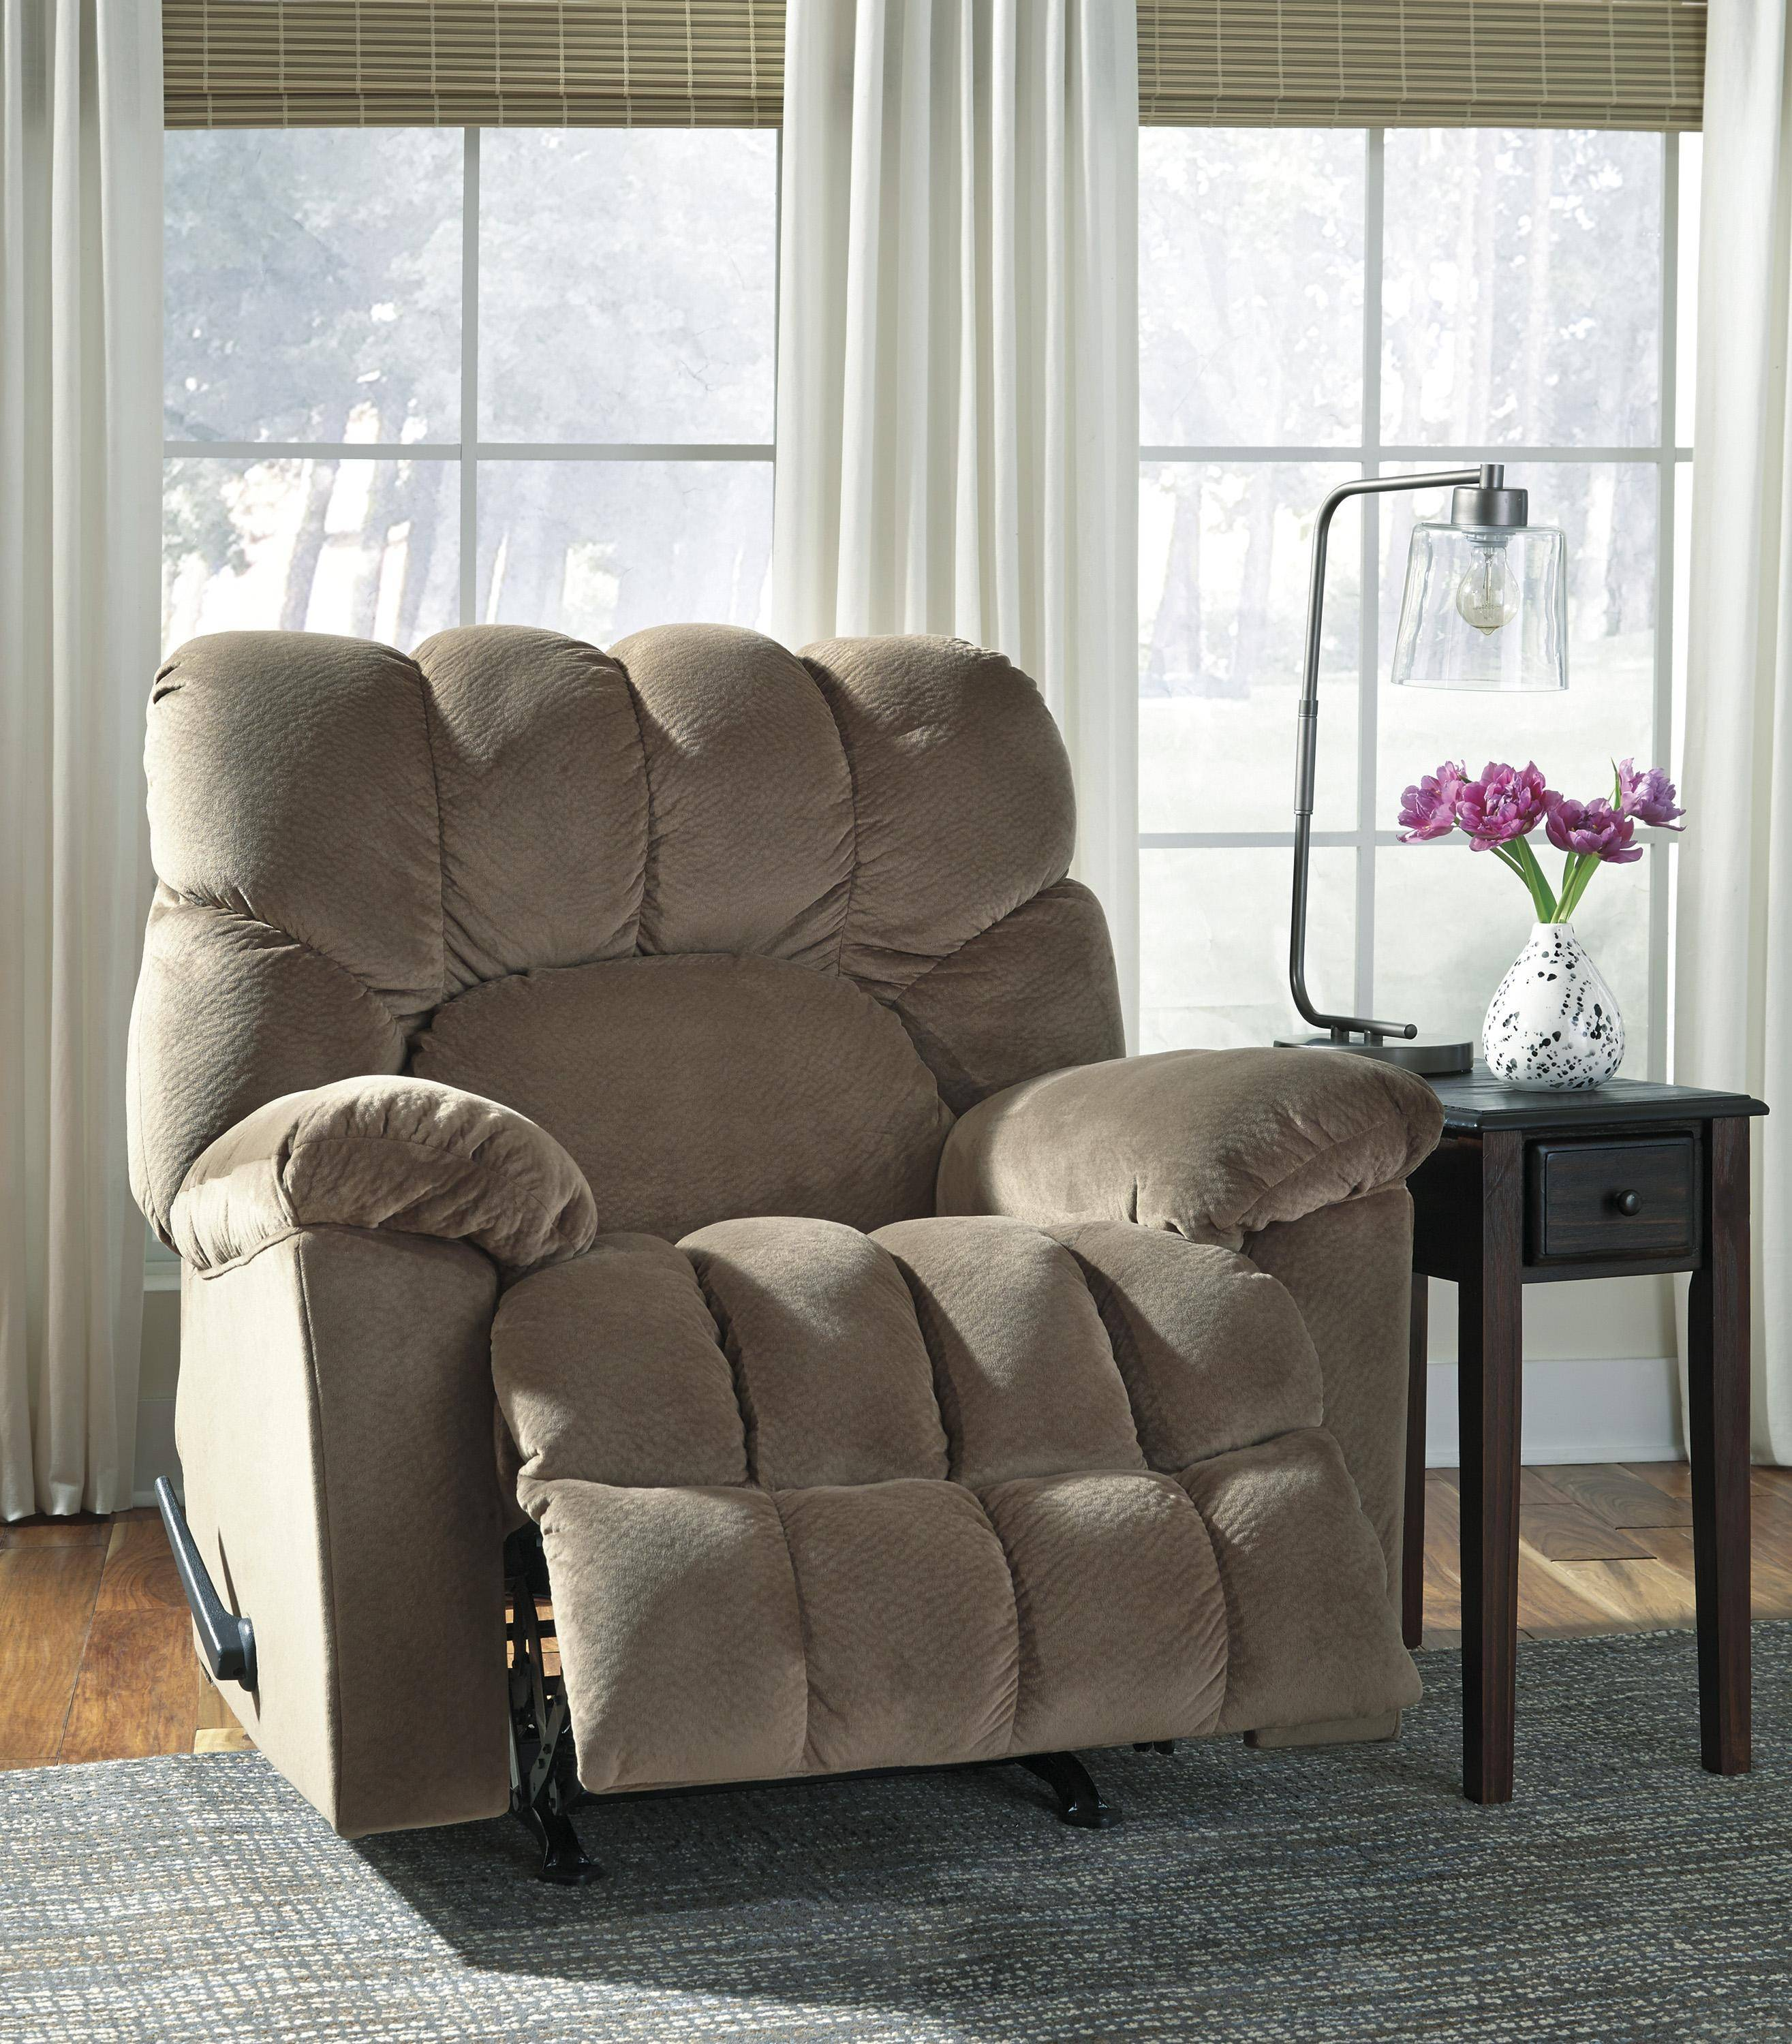 Ashley Dombay 58602 Rocker Recliner In Sable (5860225) Buy